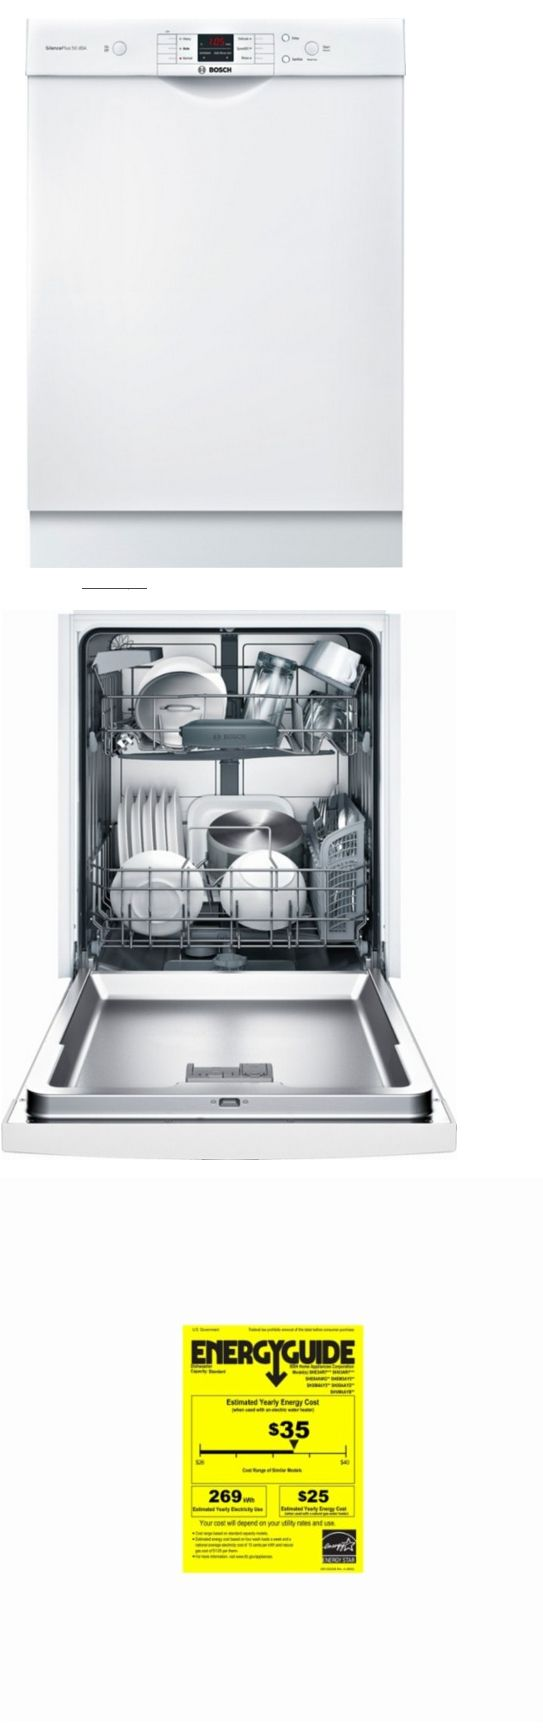 Dishwashers 116023 Bosch She3ar72uc Stainless Steel Tub White Energy Star 6 Wash Cycles 50dba Buy It Now Only 479 On Ebay D Steel Tub Bosch Energy Star